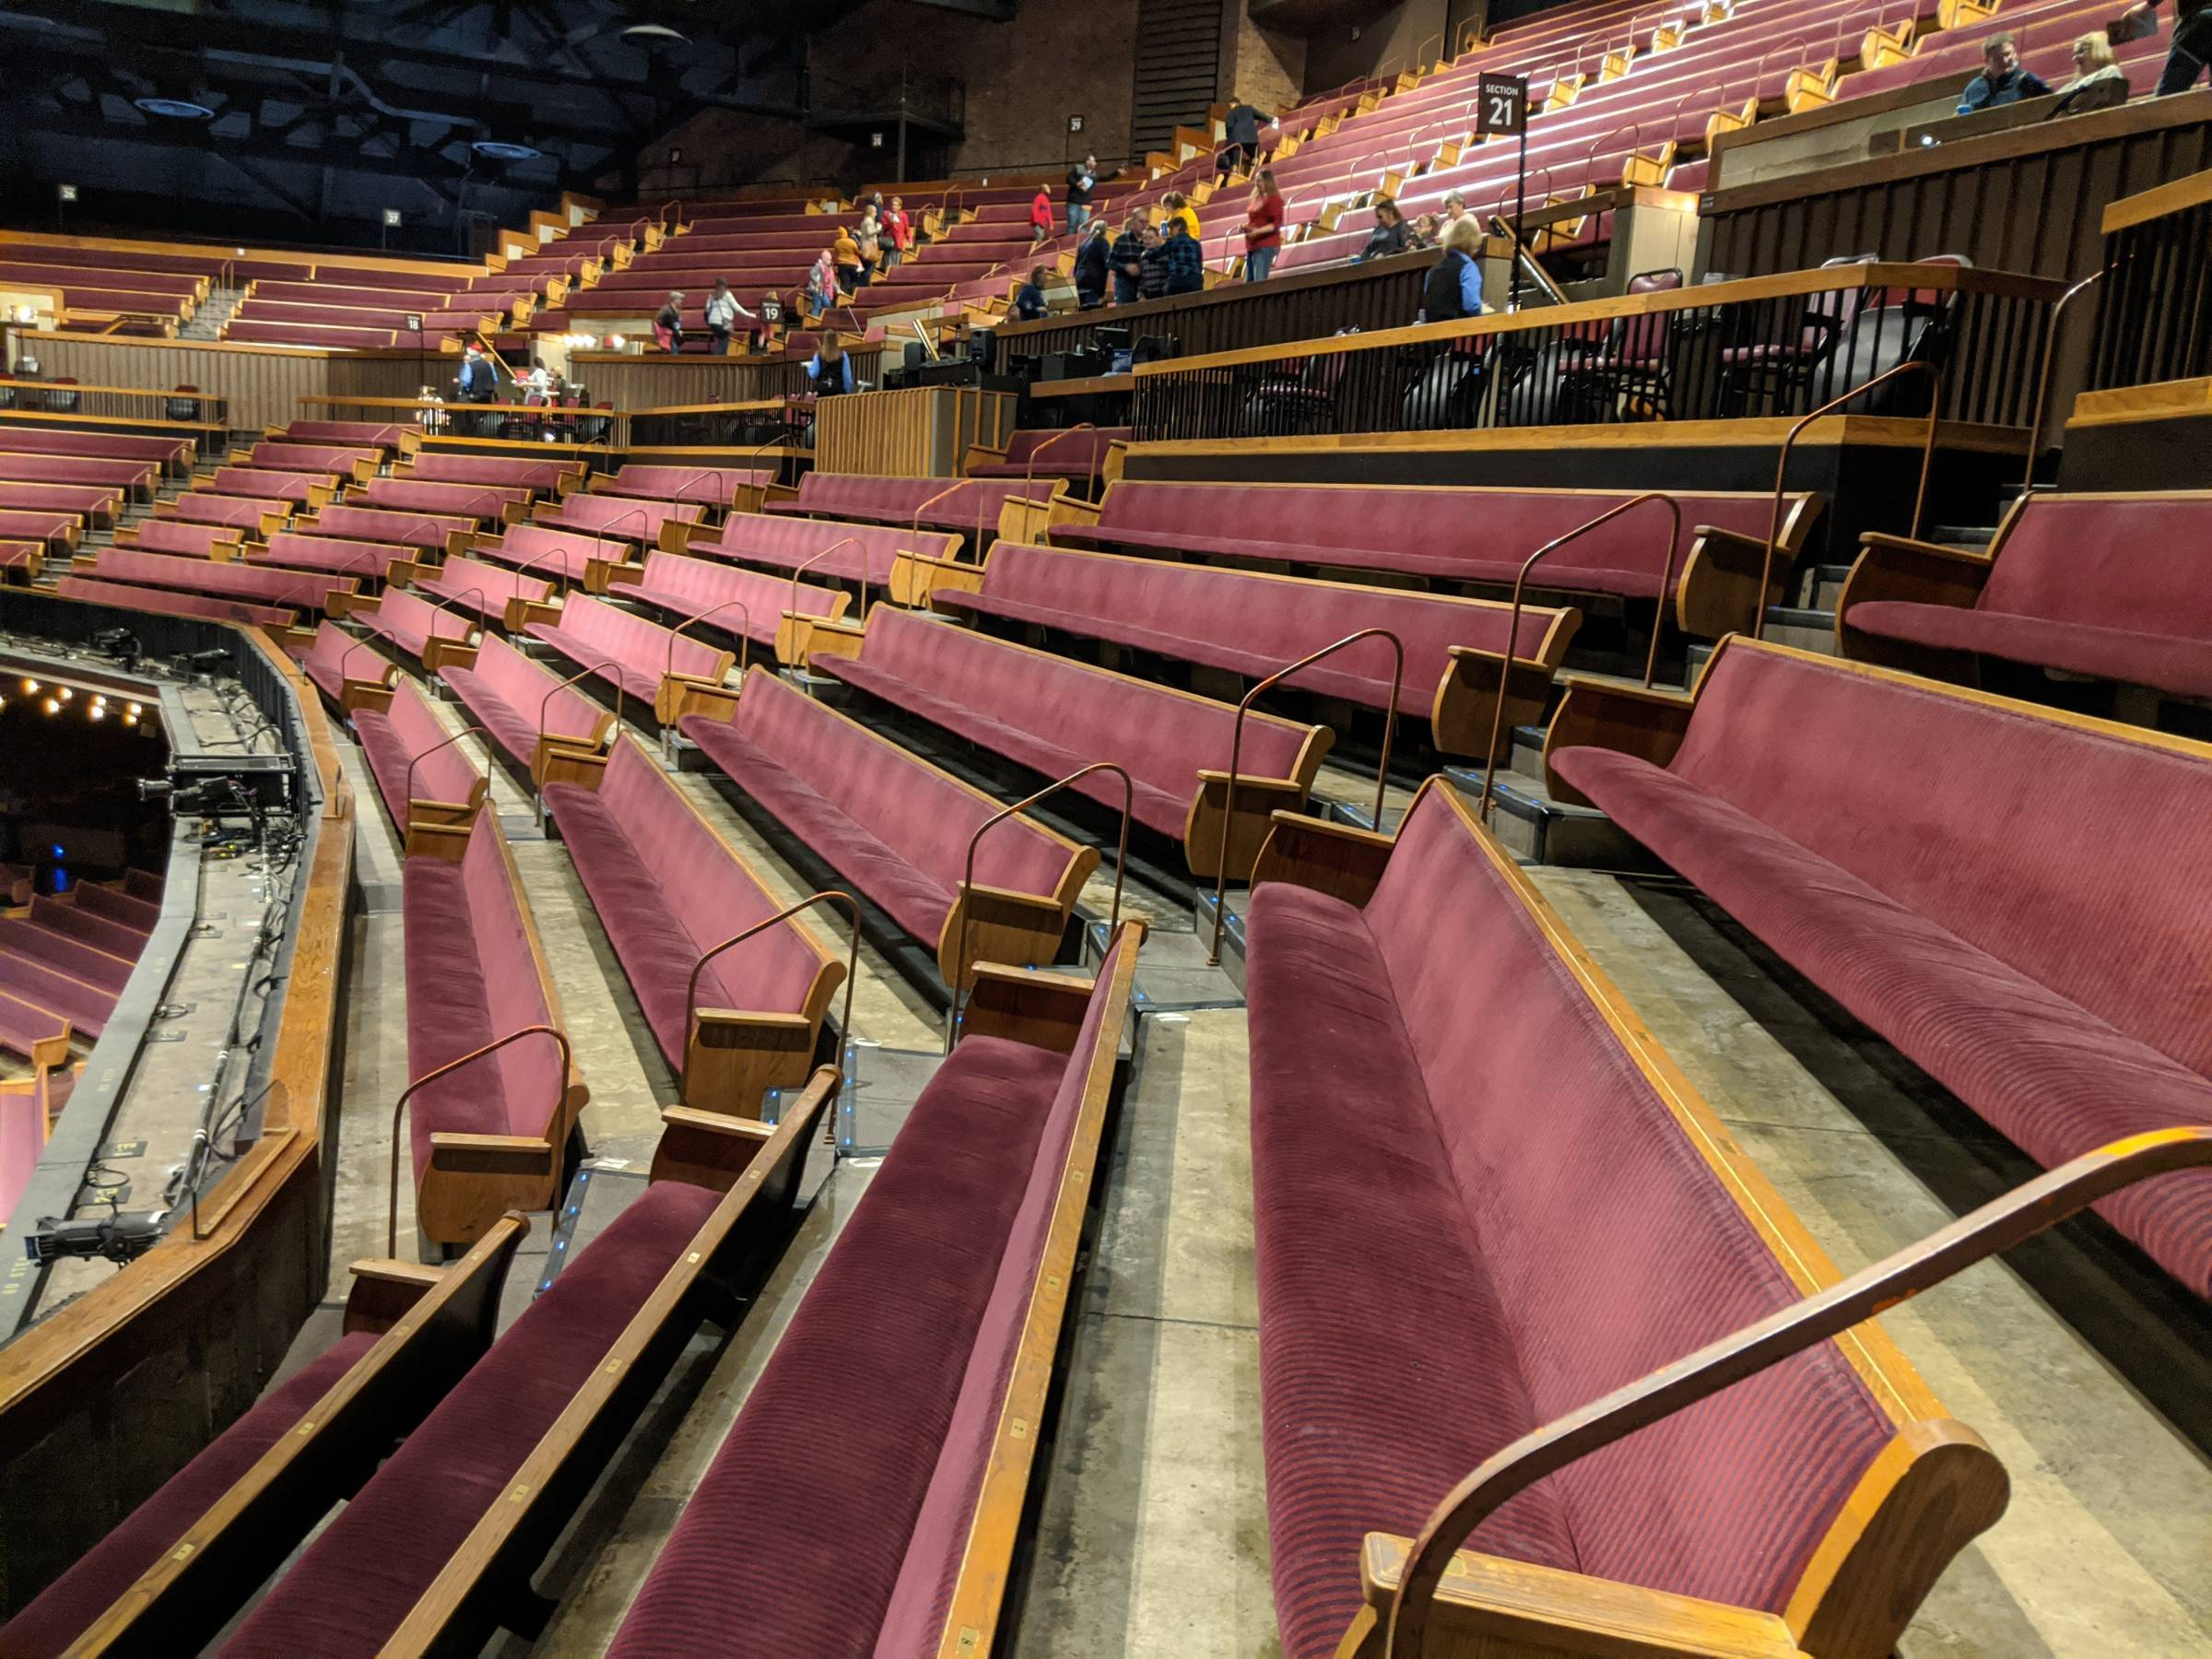 Mezzanine Seating at Grand Ole Opry House